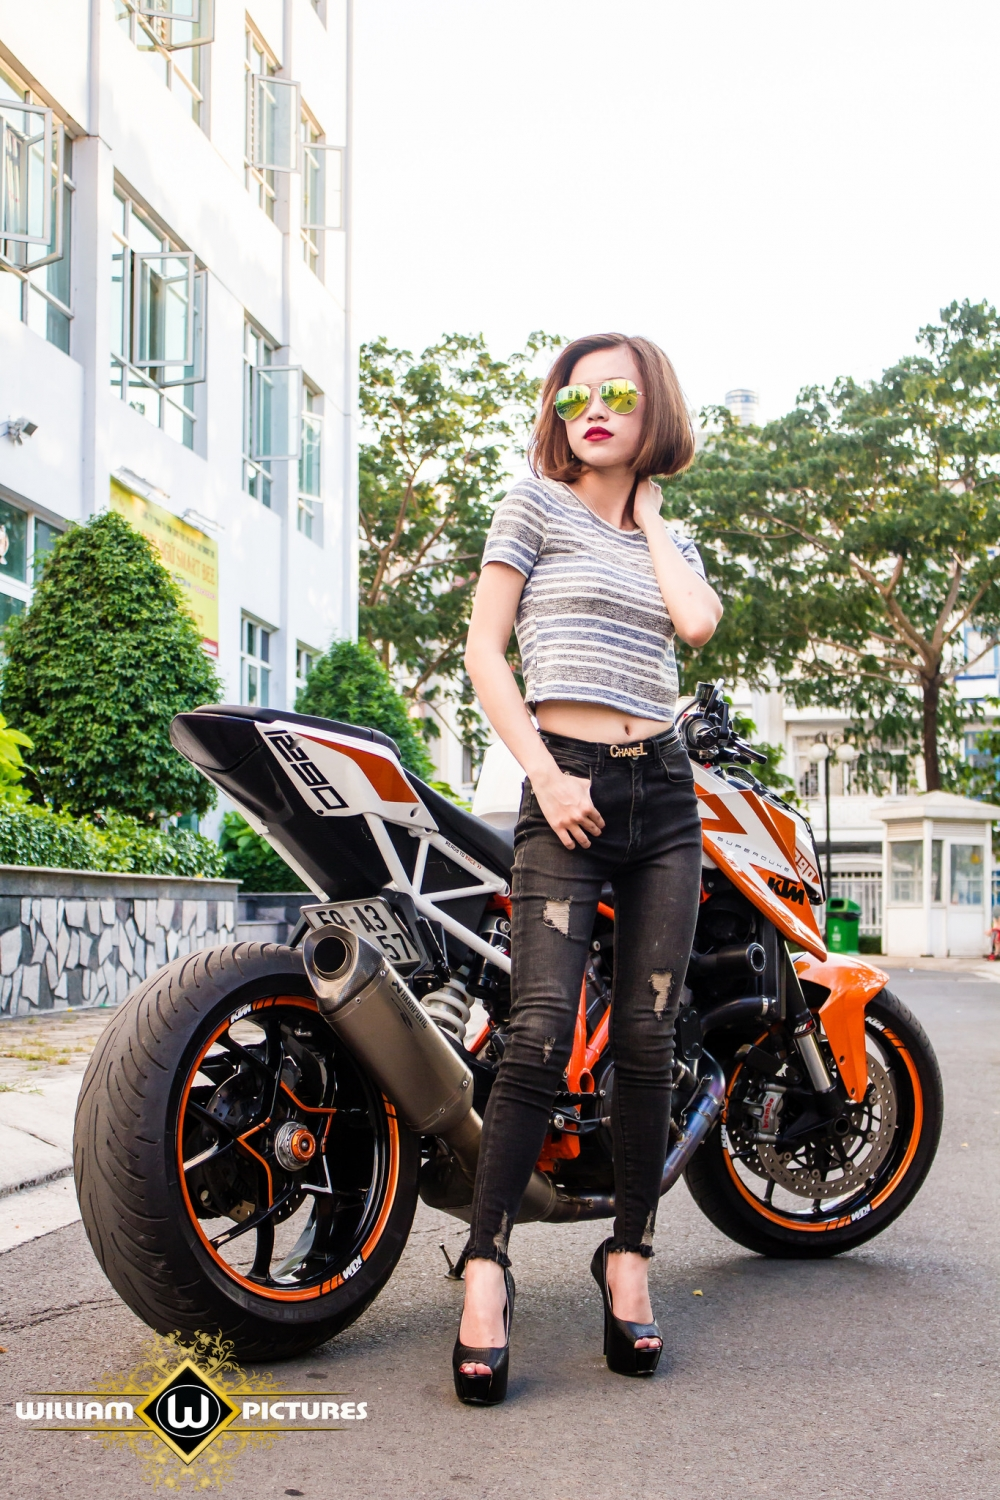 Ktm 1290 Super Duke Code But Gorgeous In The Photos R